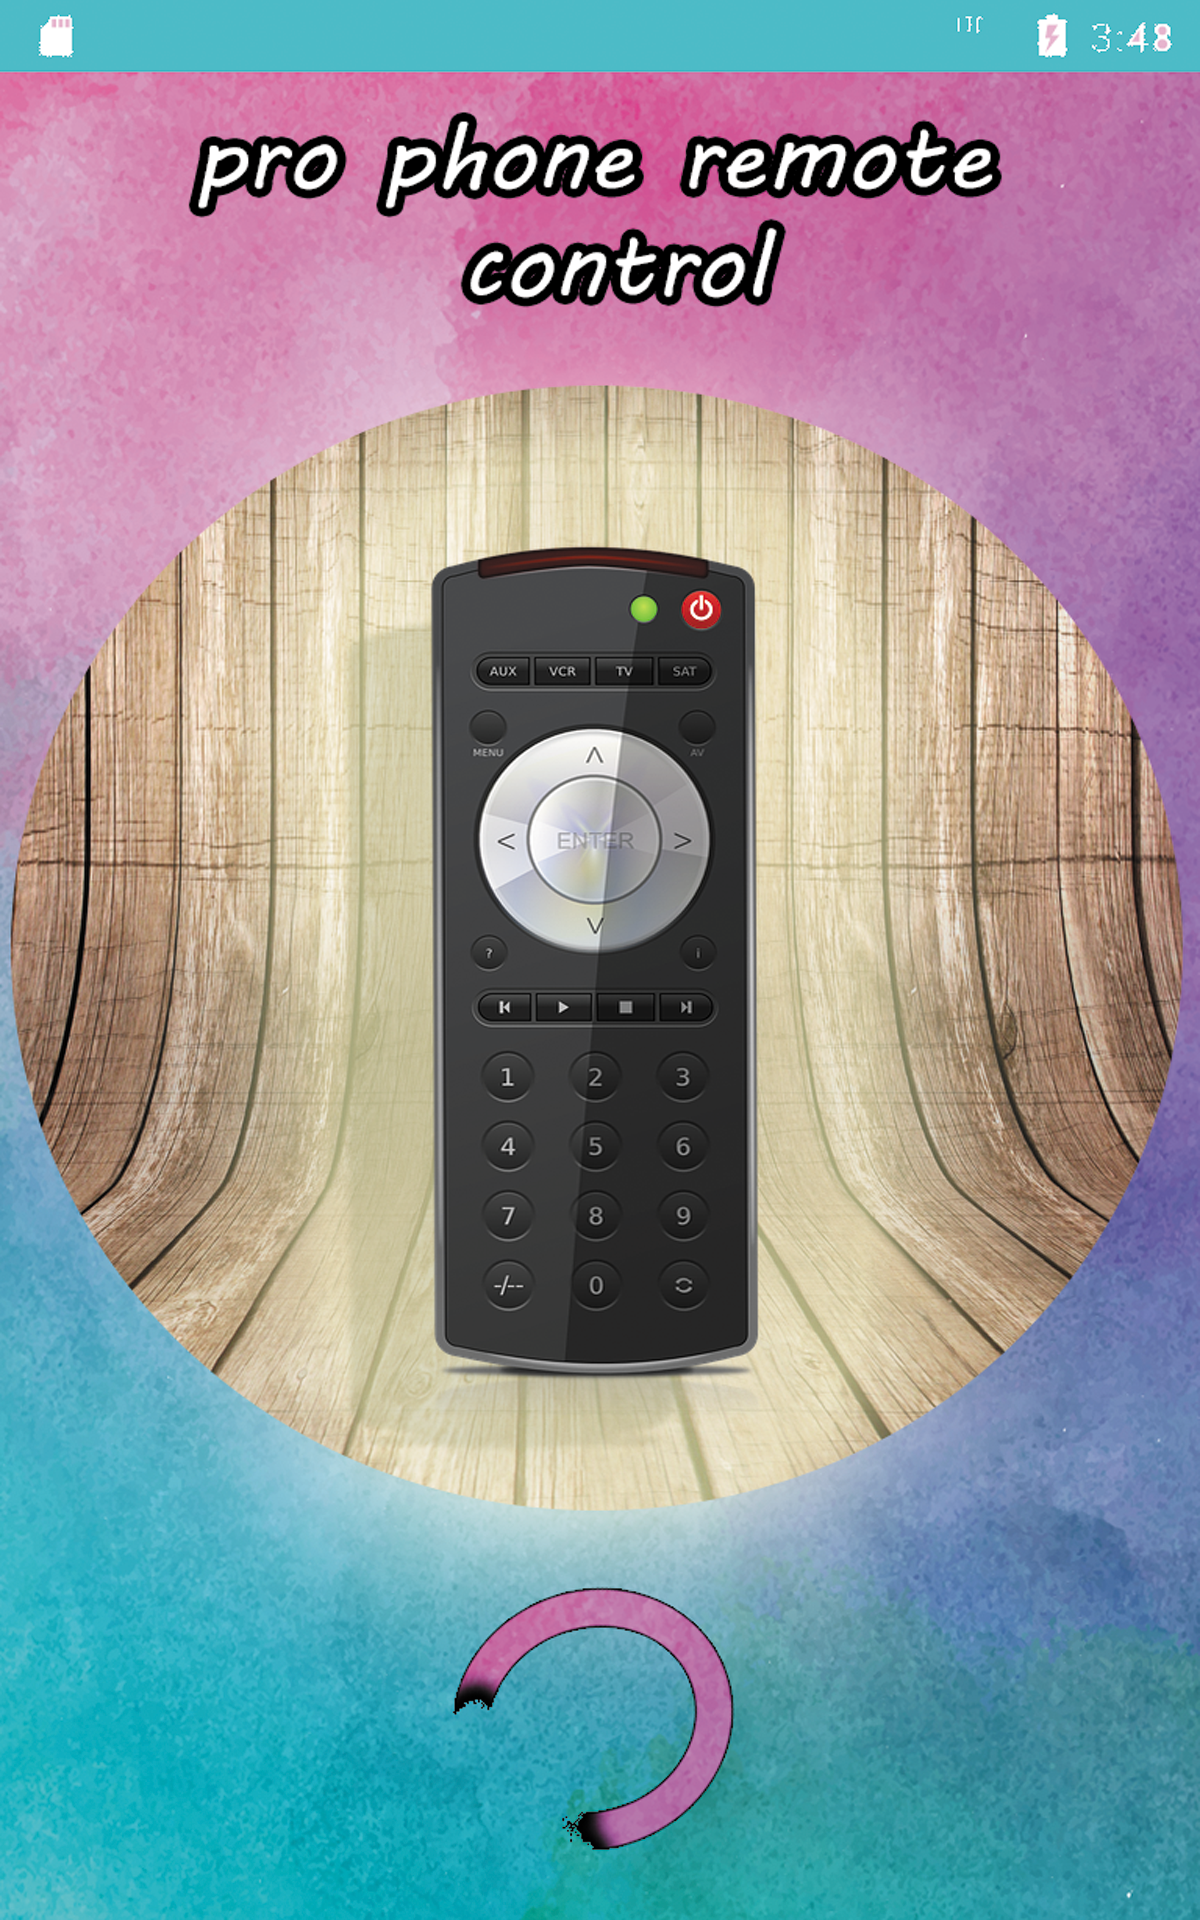 Zoom IMG-2 pro tv remote control phone